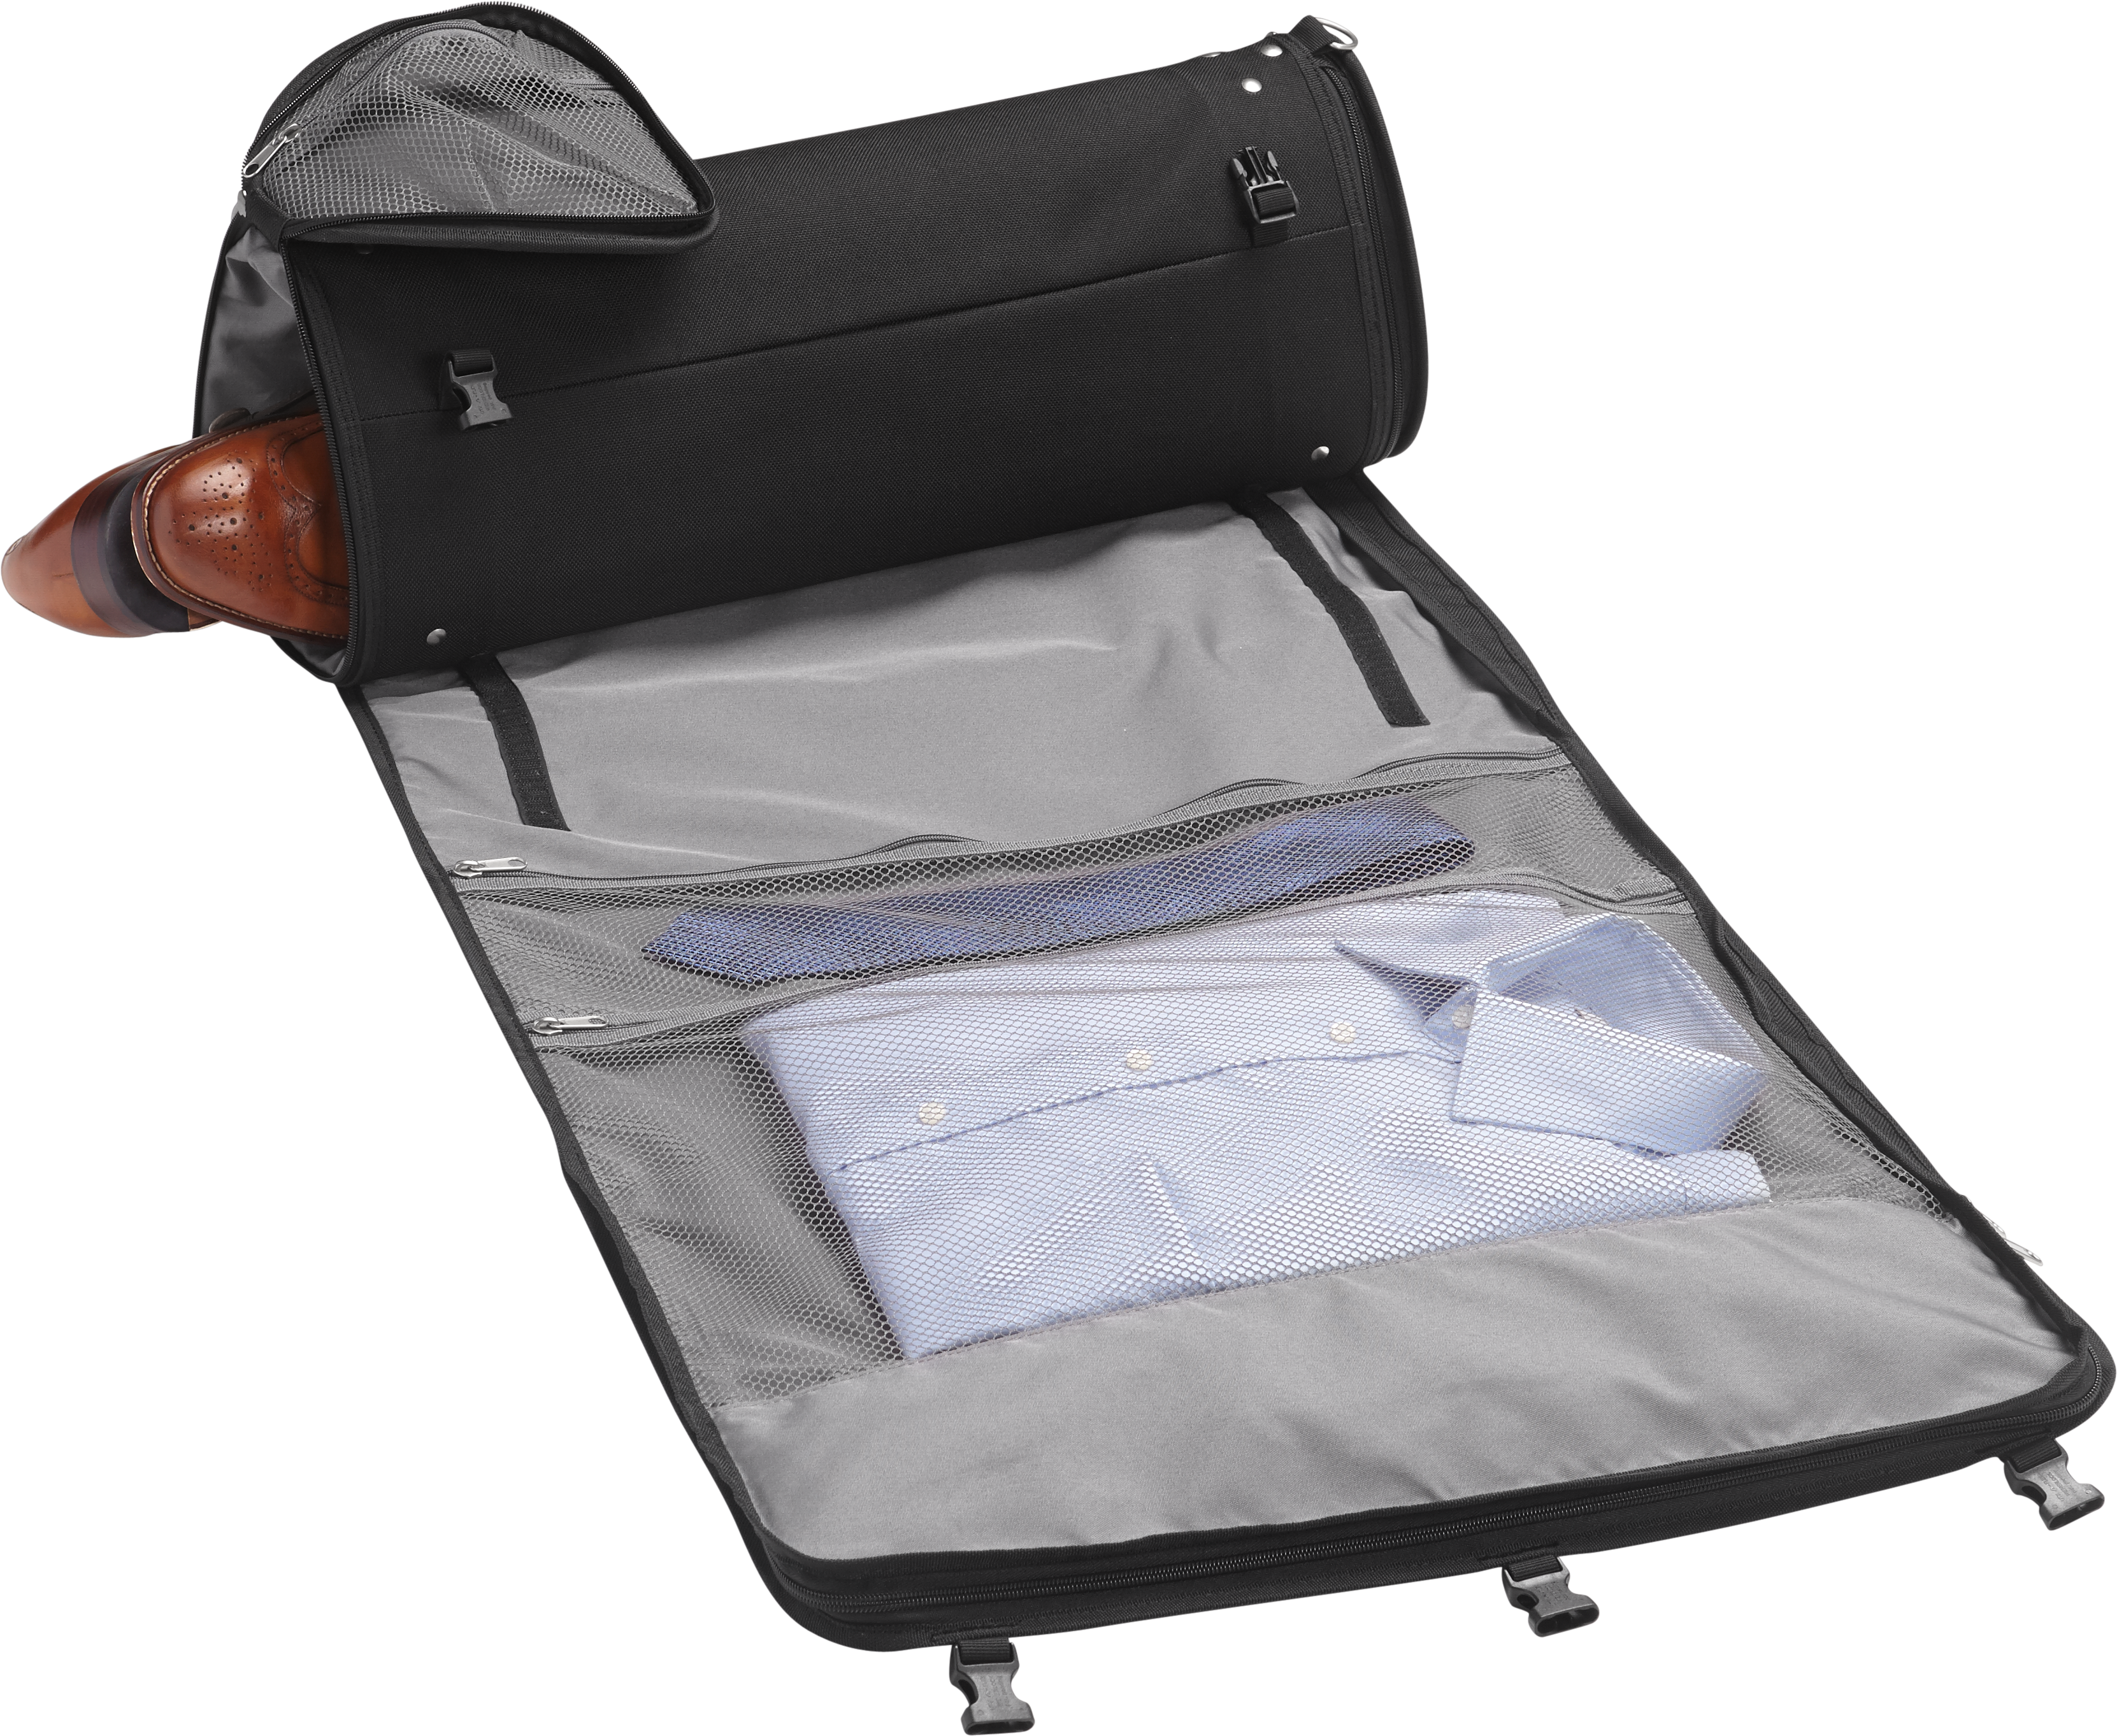 The SkyRoll Roll Up Garment Bag travel product recommended by Don Chernoff on Lifney.